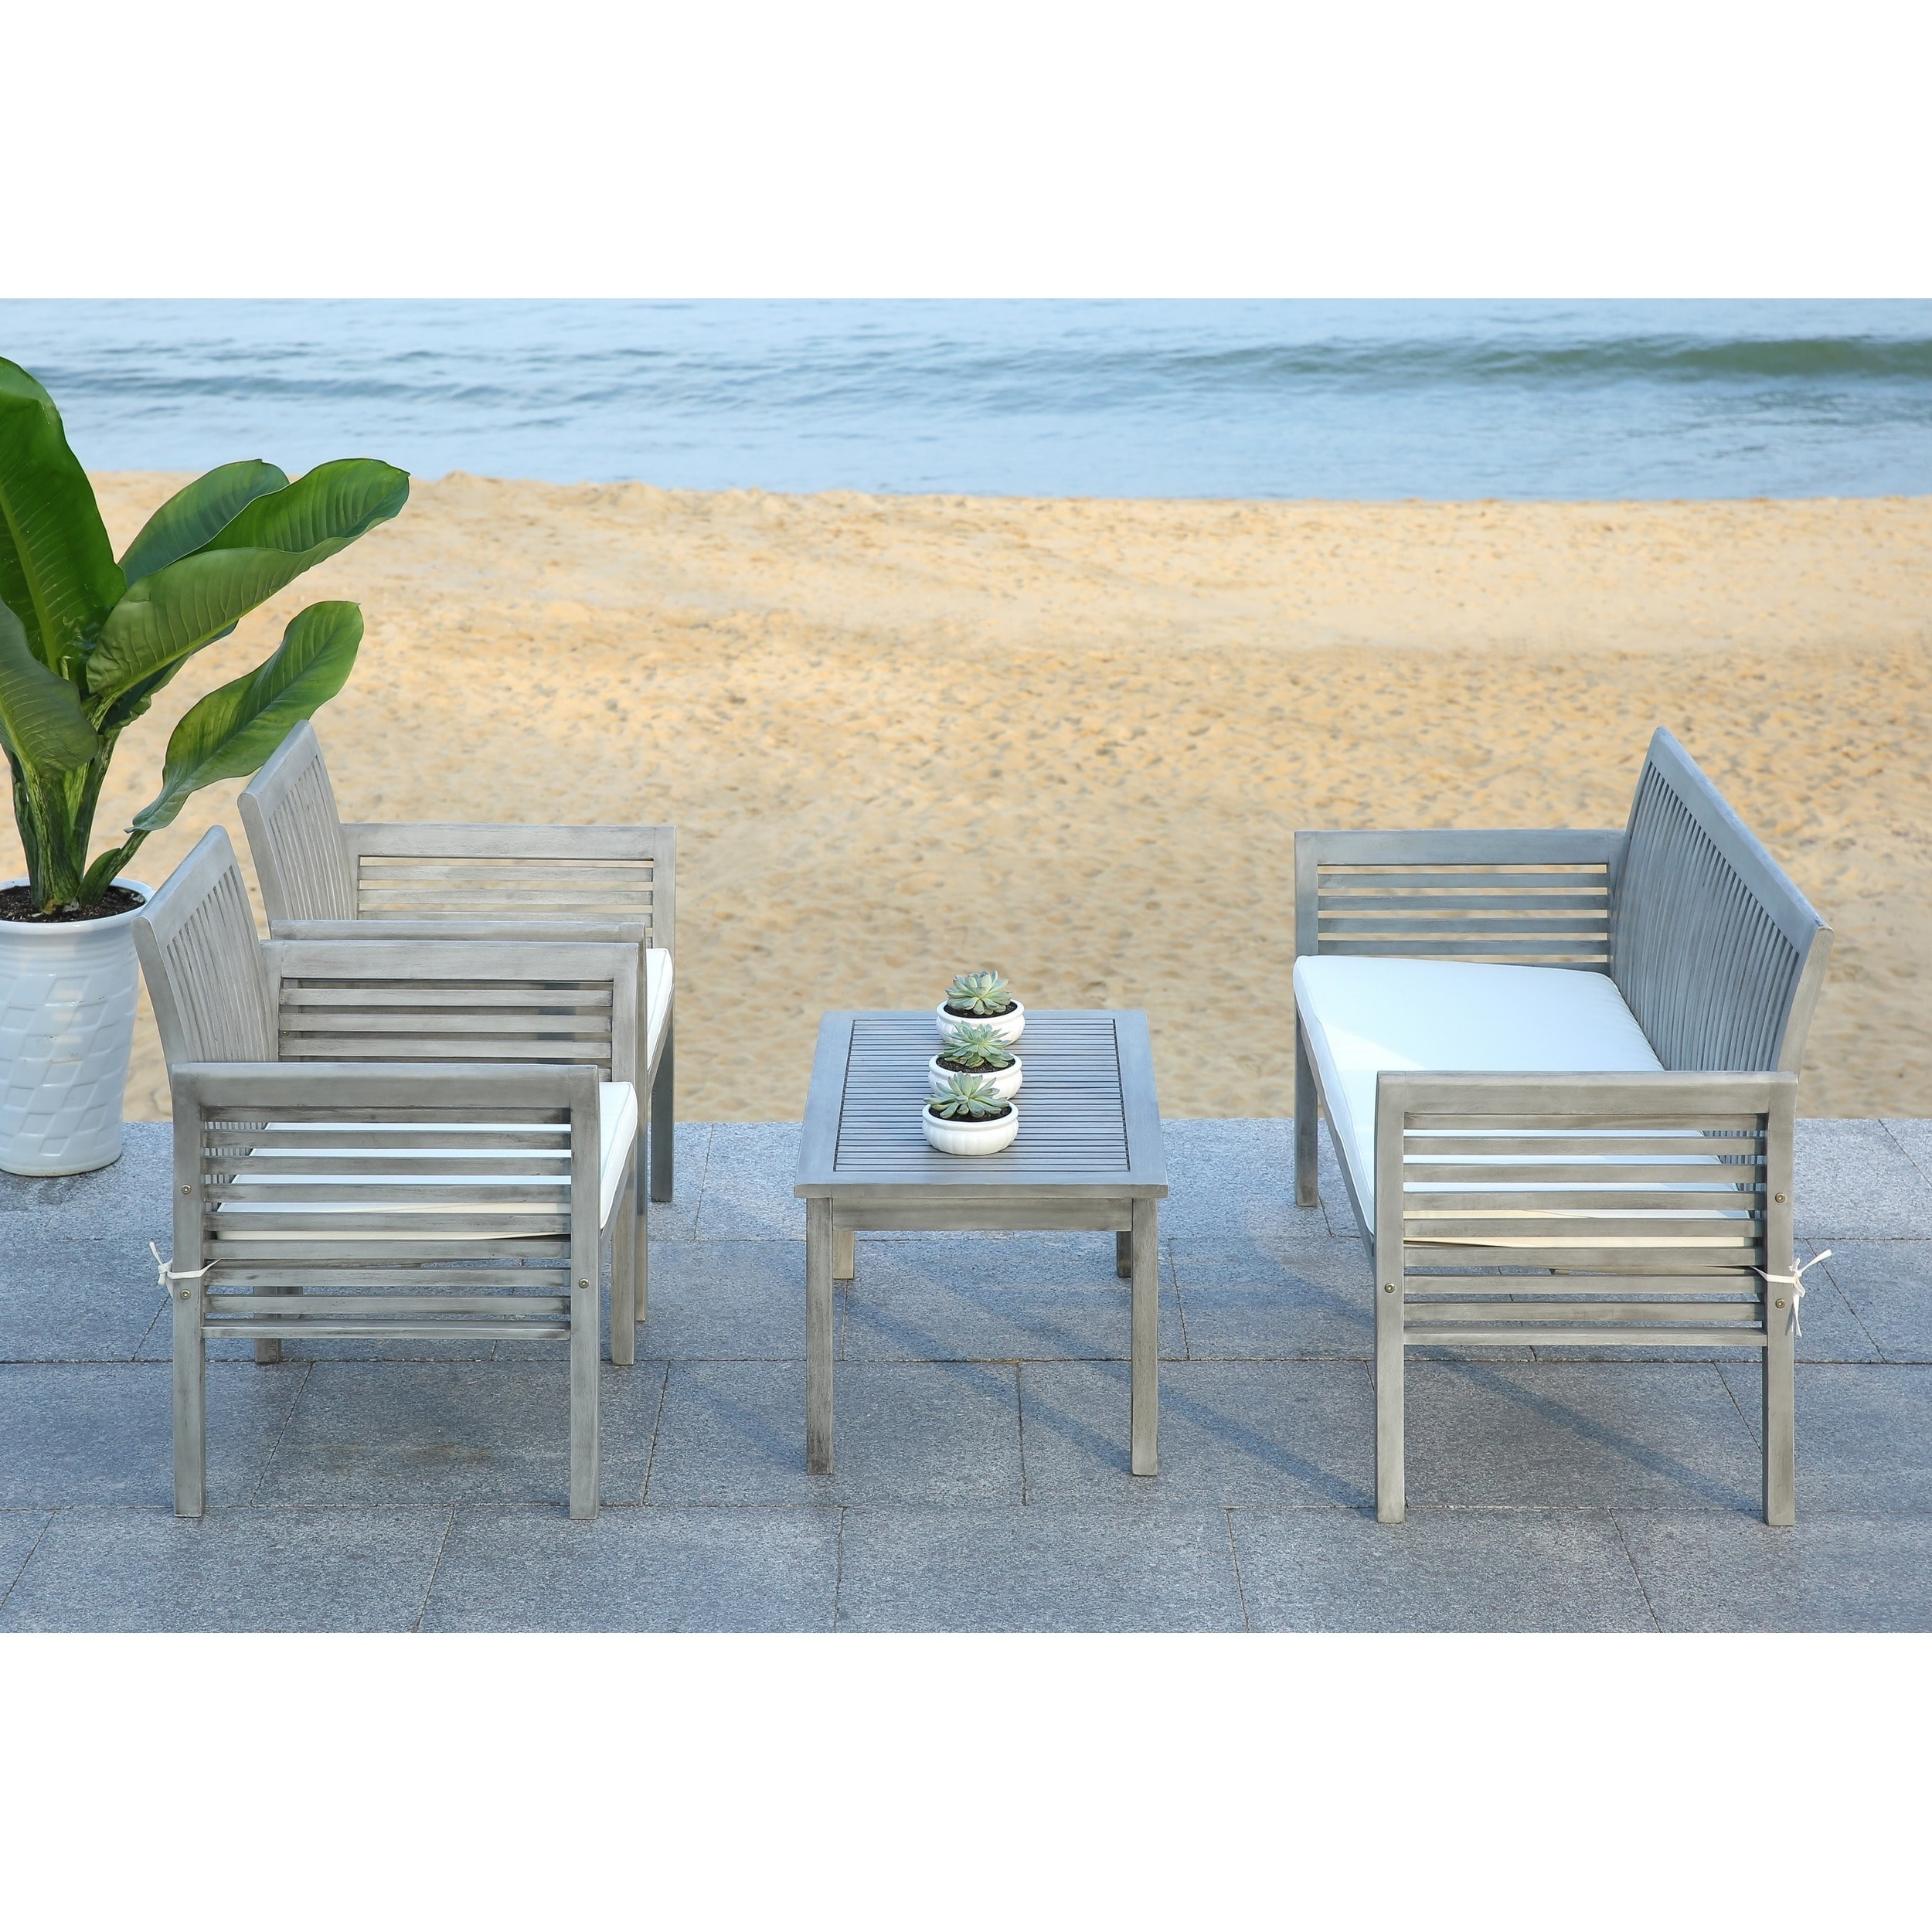 Safavieh Carson Grey Wash Acacia Wood 4 Piece Outdoor Furniture Set Free Shipping Today 16207347